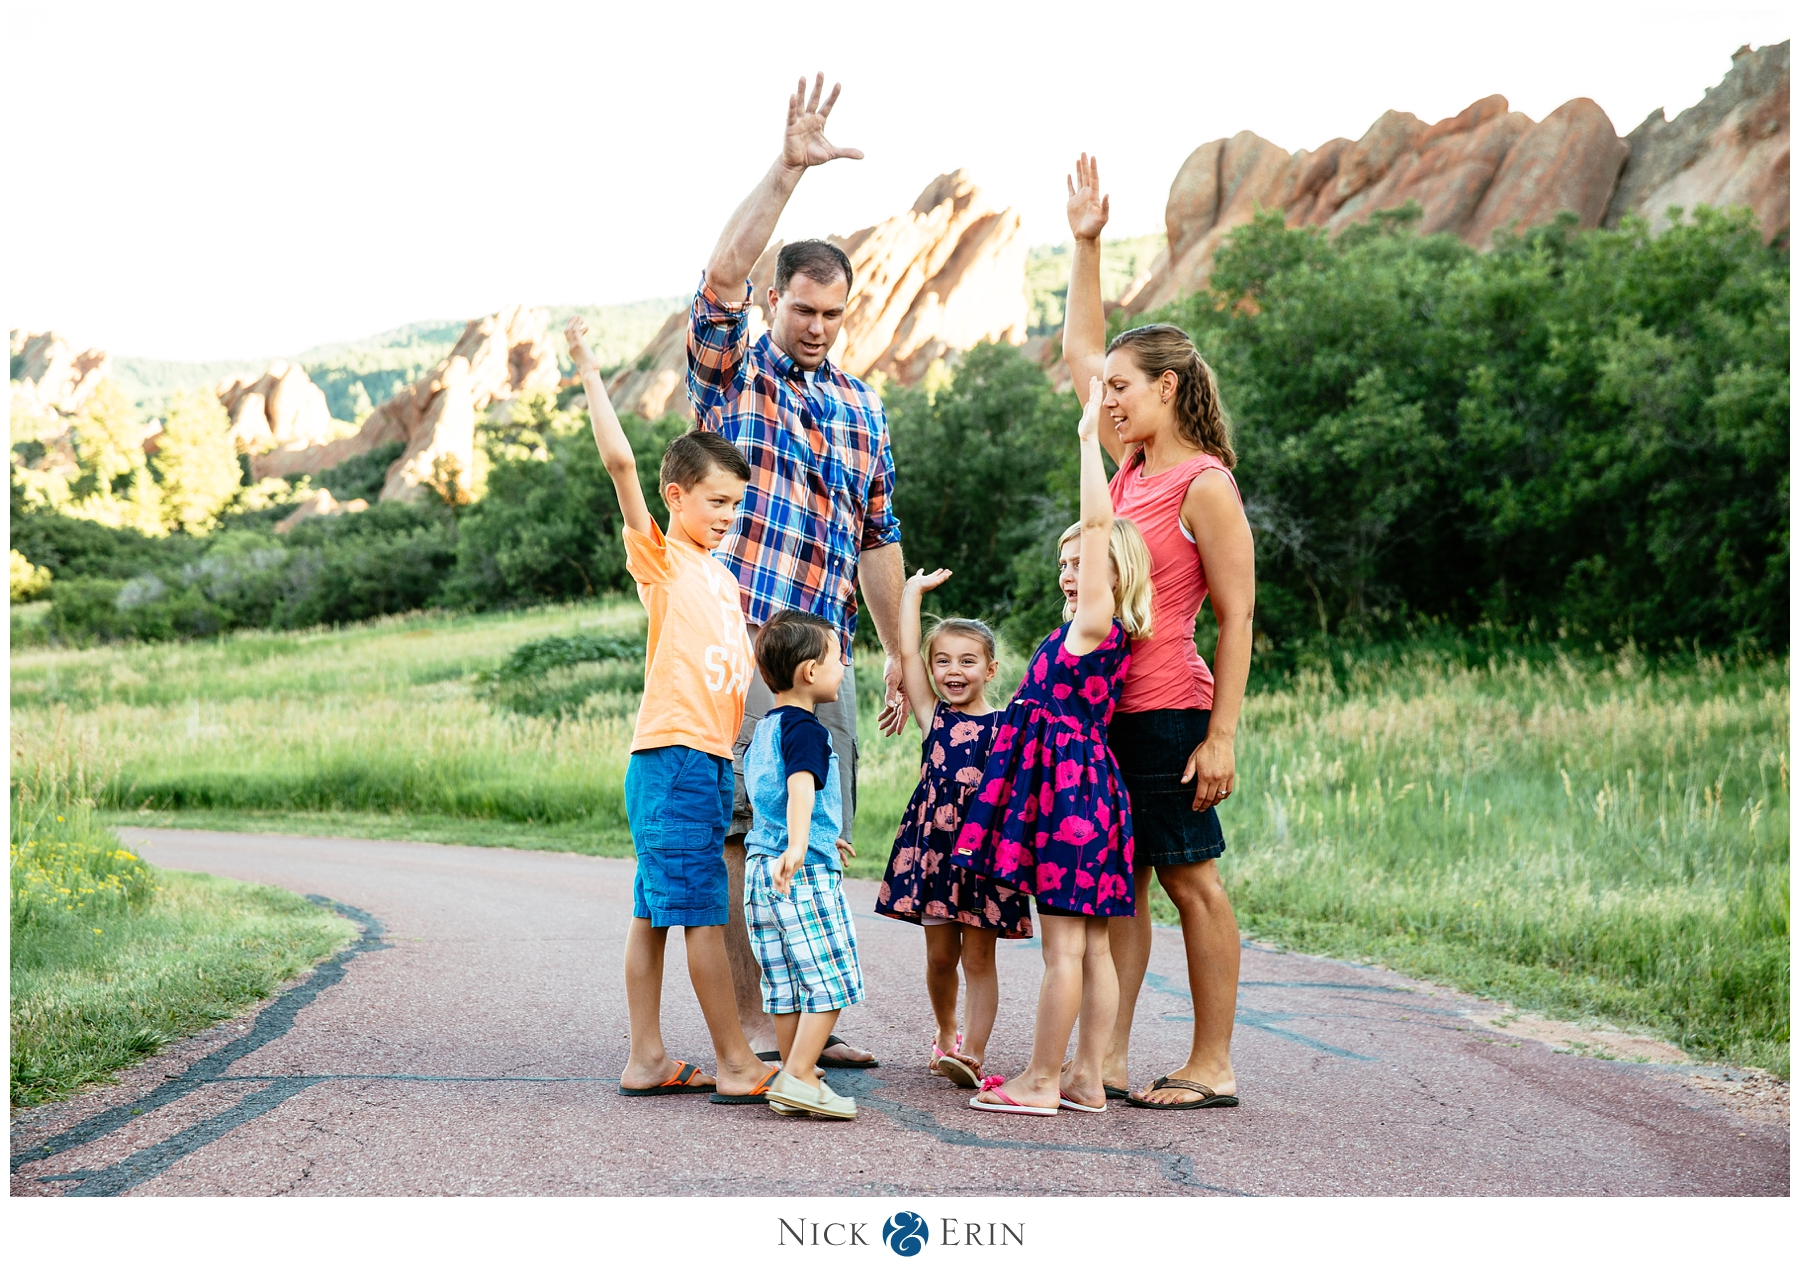 Donner_Photography_Denver Colorado Mountains Family Session_0006